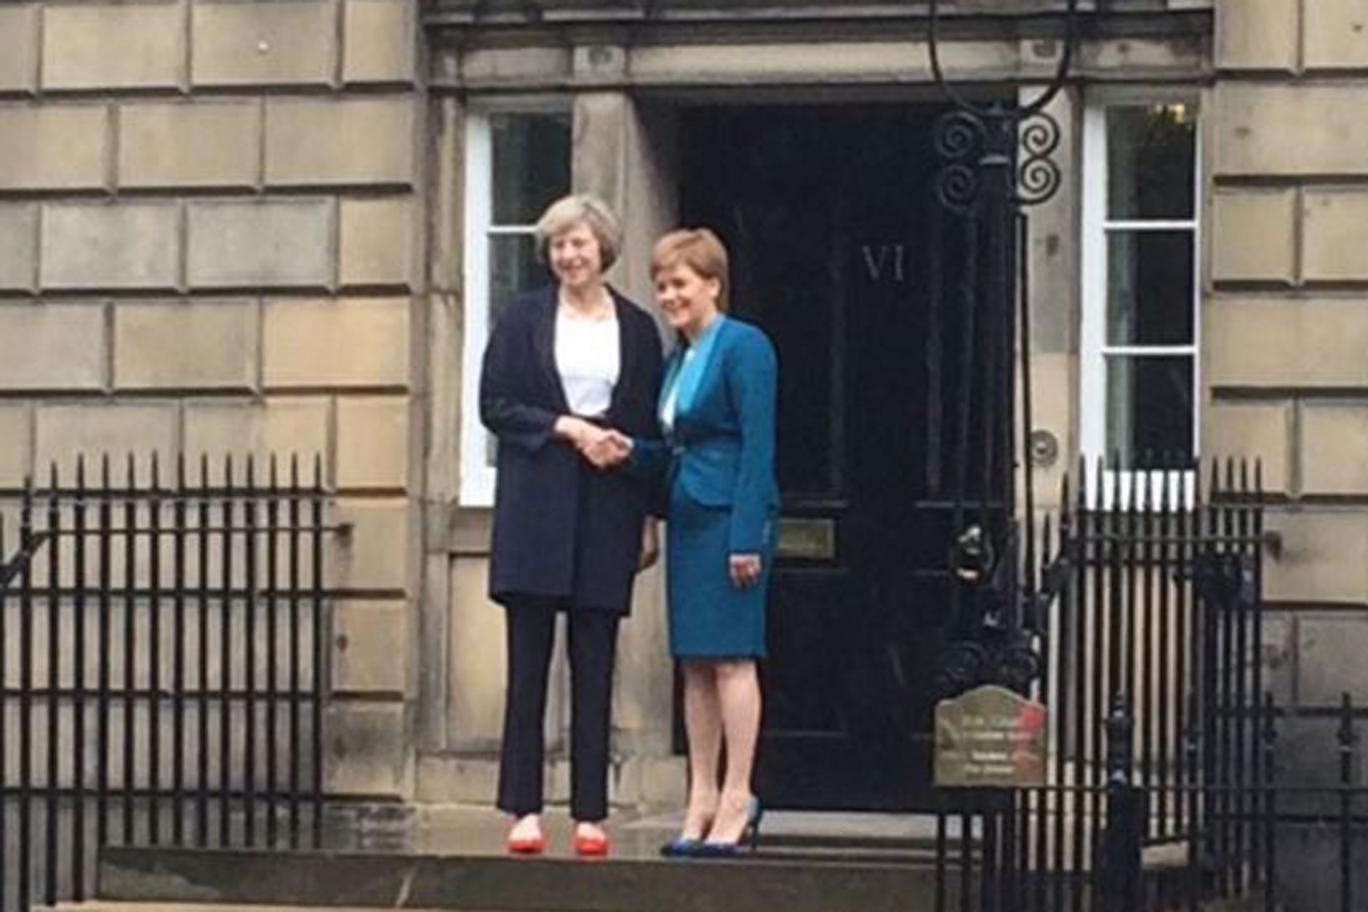 Theresa May & Nicola Sturgeon outside Bute house, Edinburgh